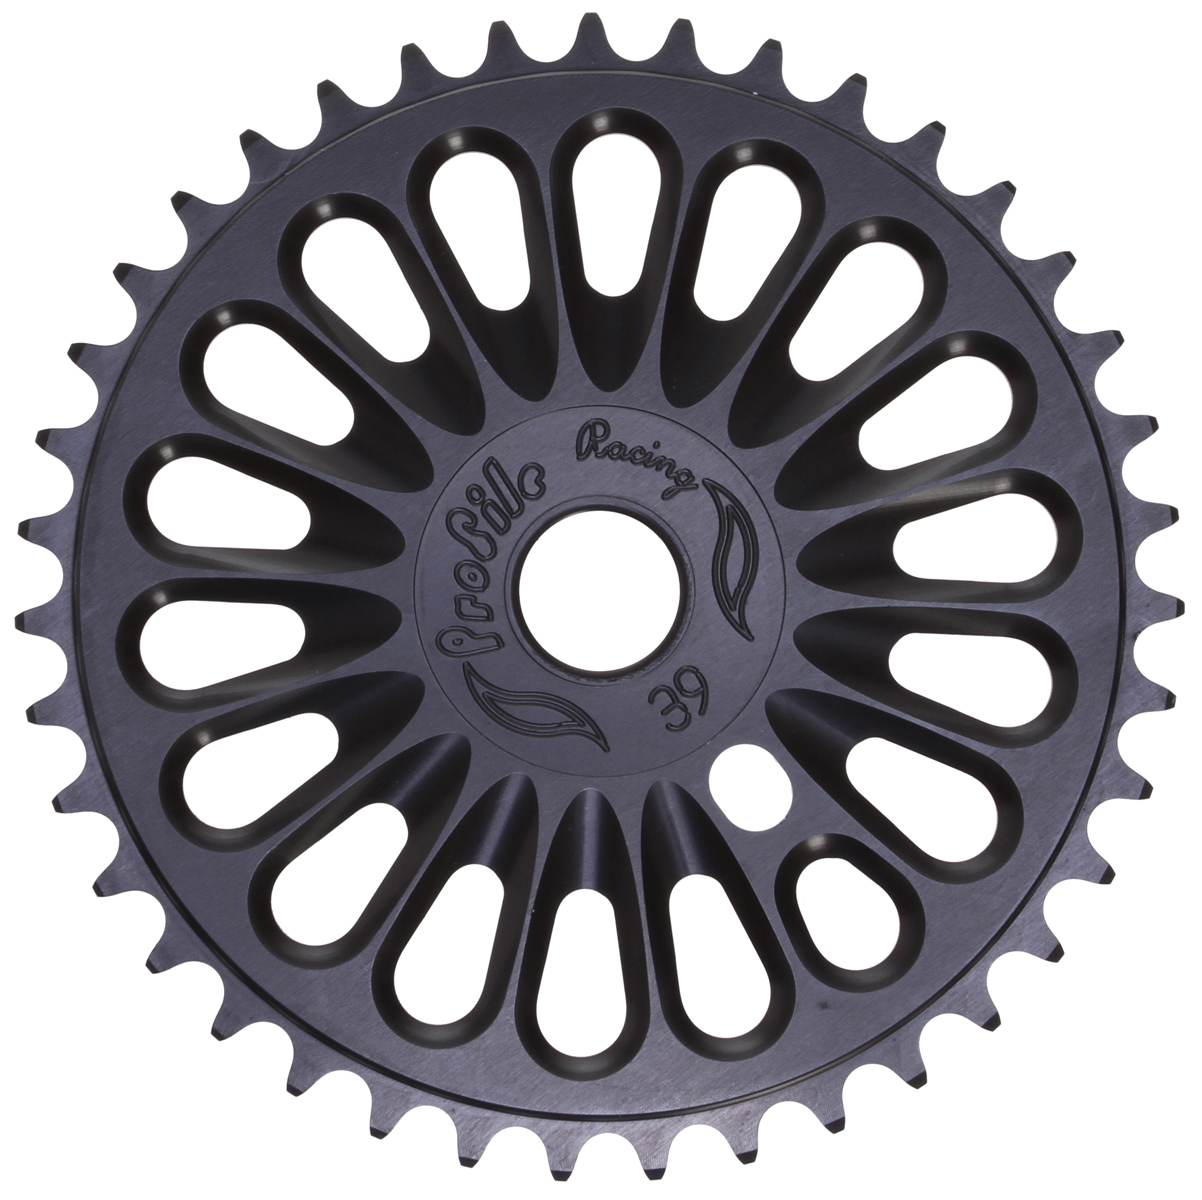 "BMX All Profile chainwheels have a .875"" spindle hole with adapter to fit 0.75"" spindles - they do not fit 1 or 2-piece cranksKey Features of the Profile Racing Imperial BMX Chainwheel Black 39T: Teeth: 39 teeth Spindle Hole Diameter: 22.2mm/.875 Material: 6061 Wght/Dims: .4 lbs. 8.5 x 7 x .5 - $51.95"